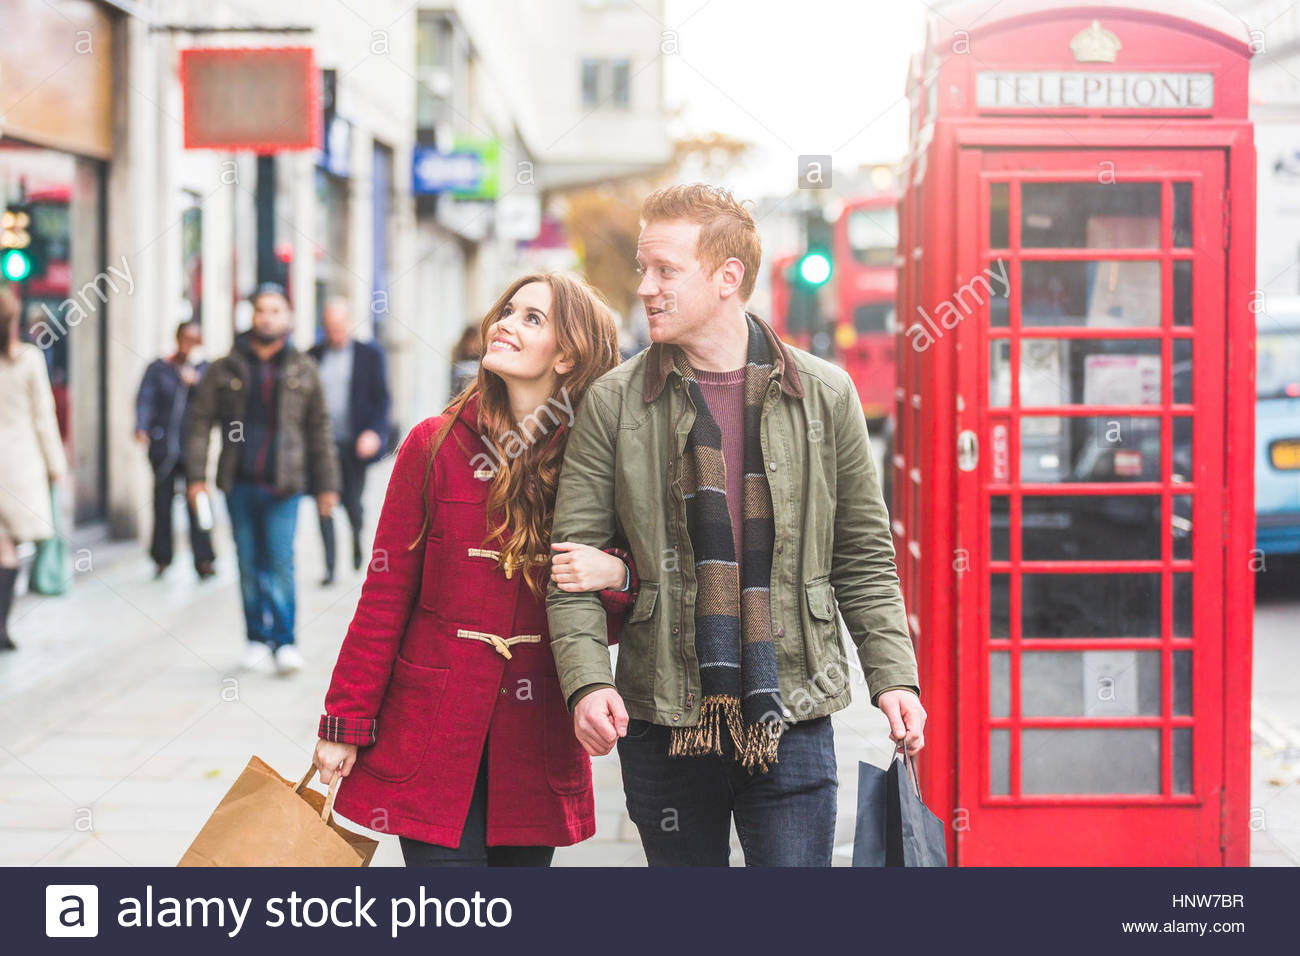 Paar auf shopping-Tour, London, UK Stockbild